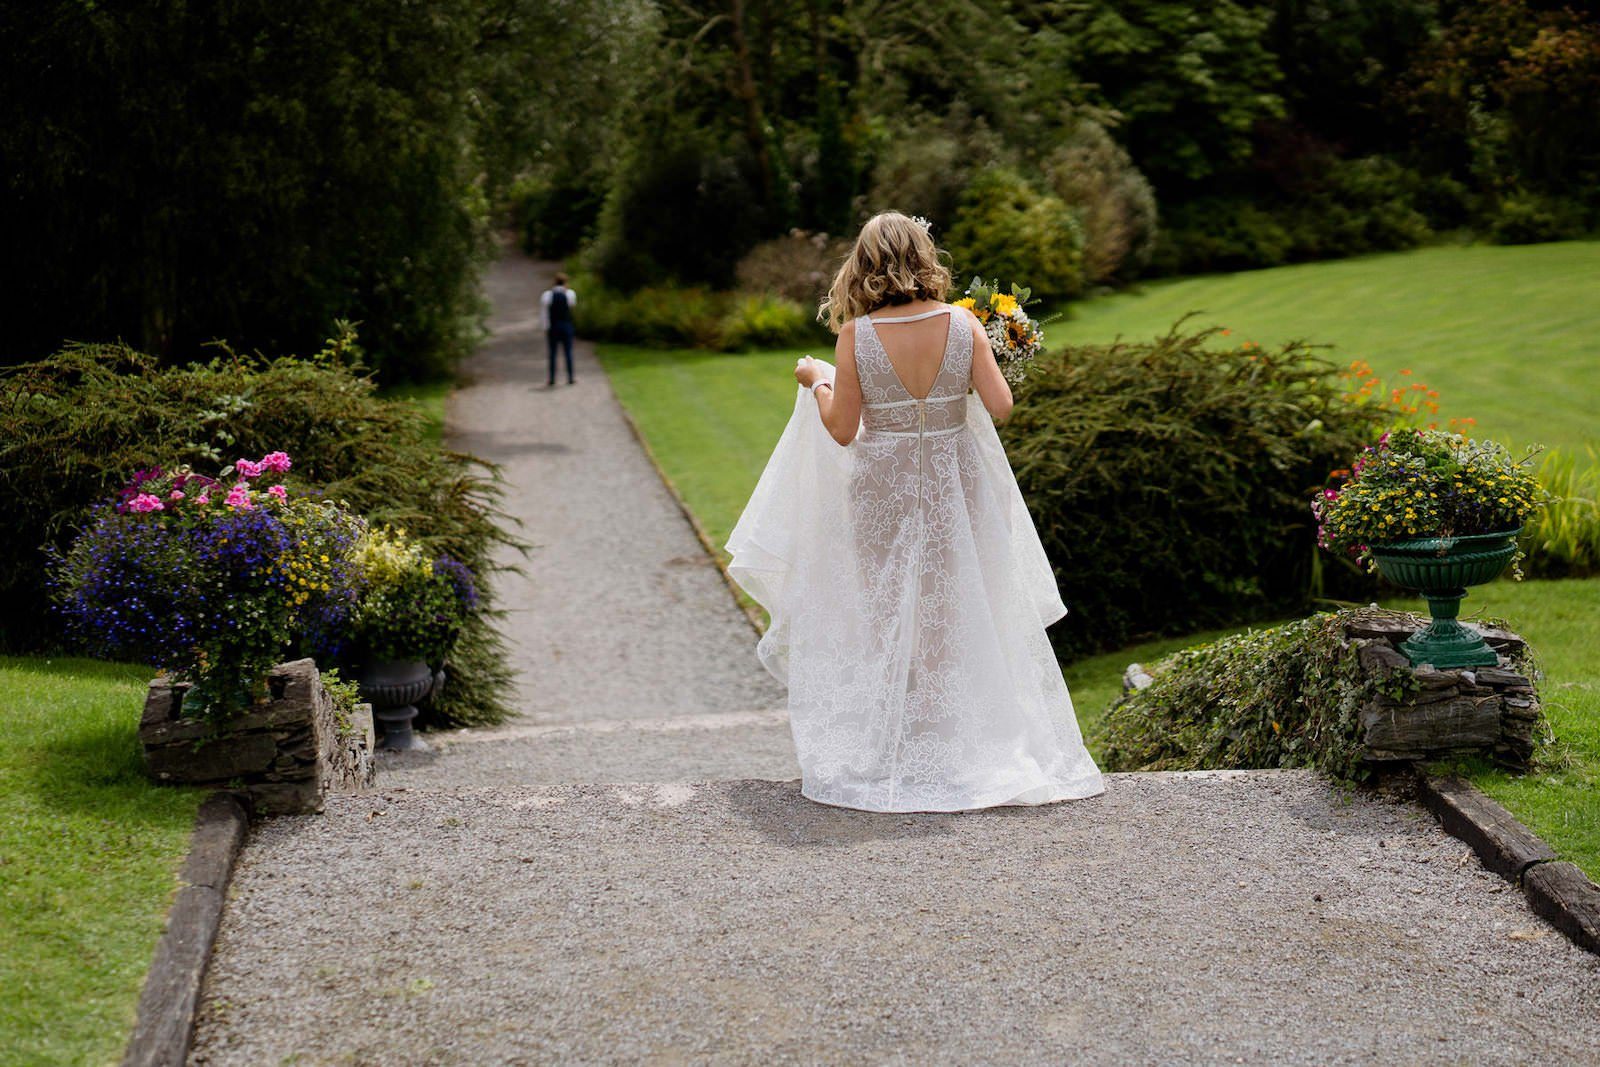 Dromquinna Manor wedding first look photography